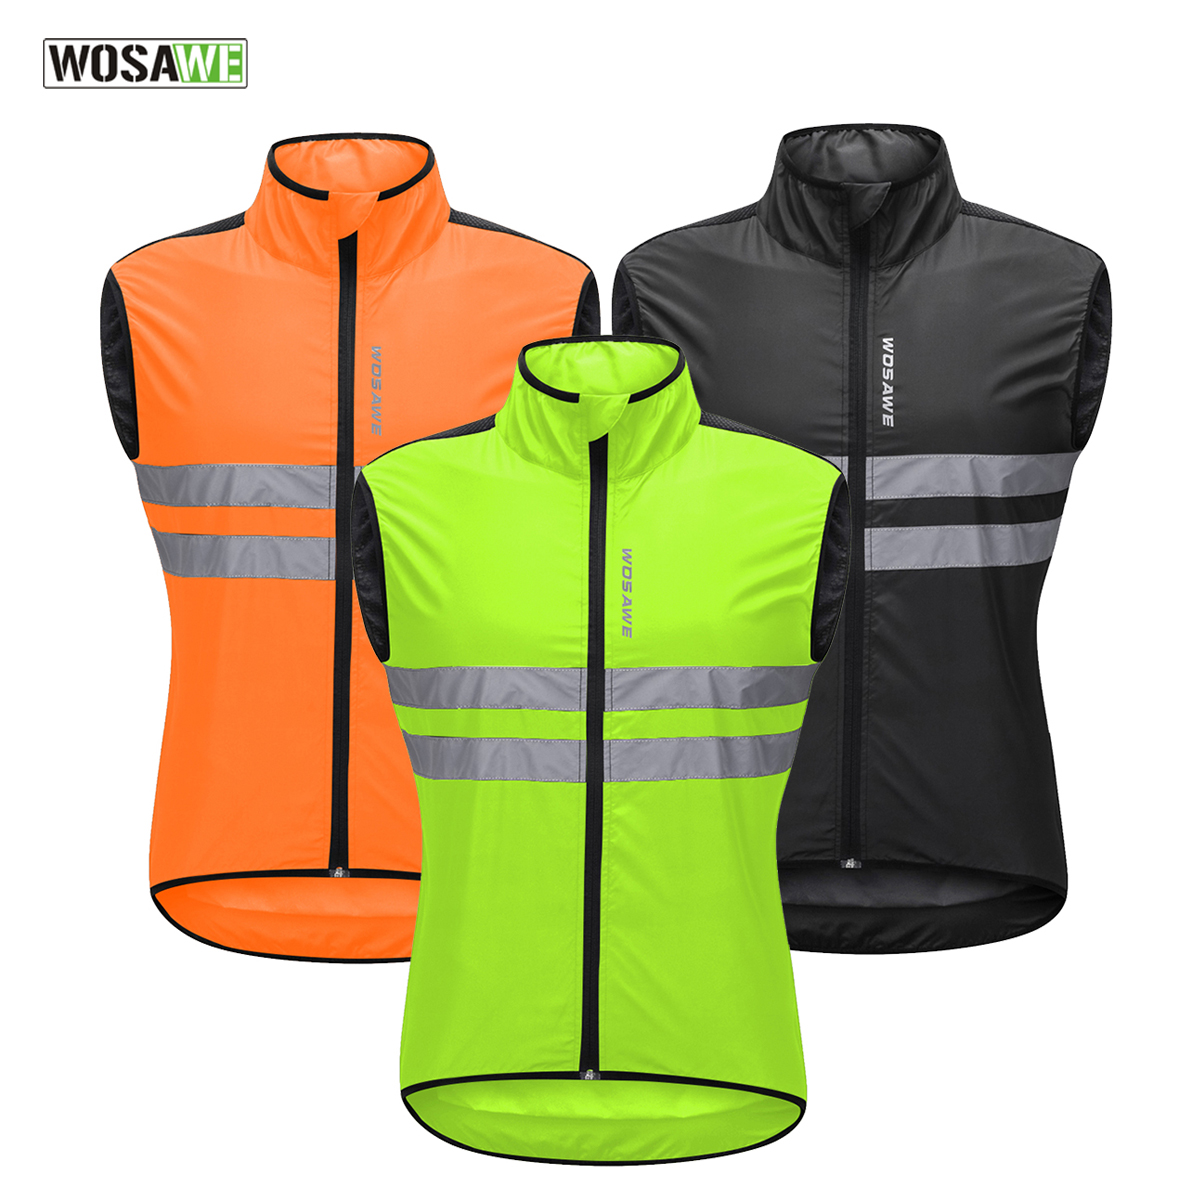 WOSAWE Cycling Vest High Visibility Reflective Safety Vest Night Running Riding Motorcycle Jacket Waistcoat Green /size M-3XL plywood